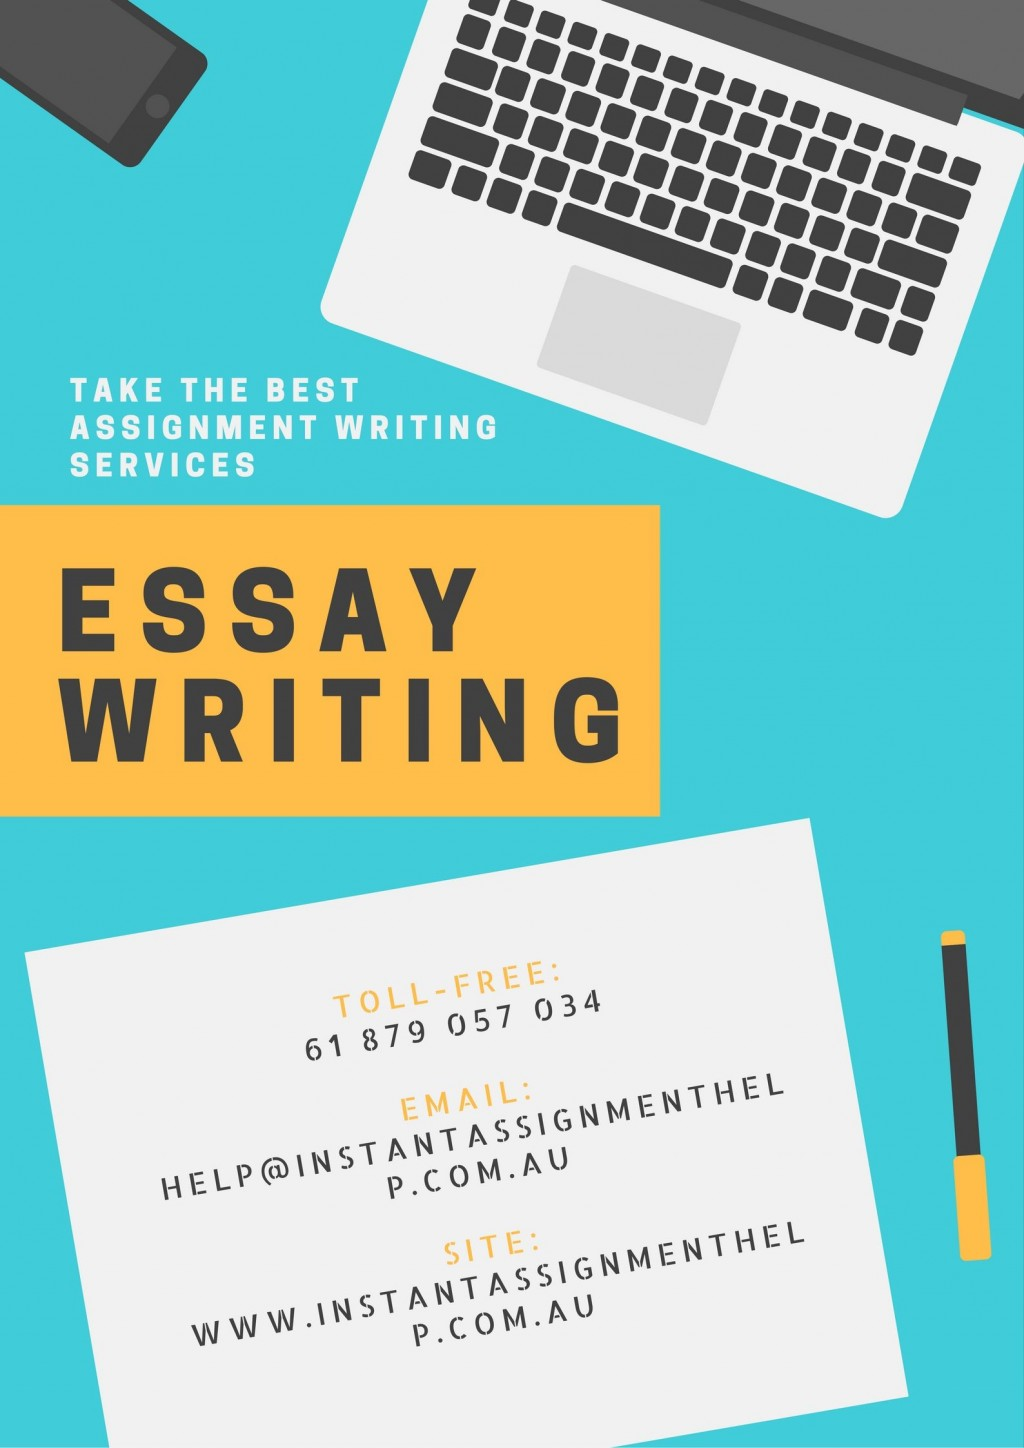 007 Essay Example Writing Help Unusual Online Service Uk Free Large